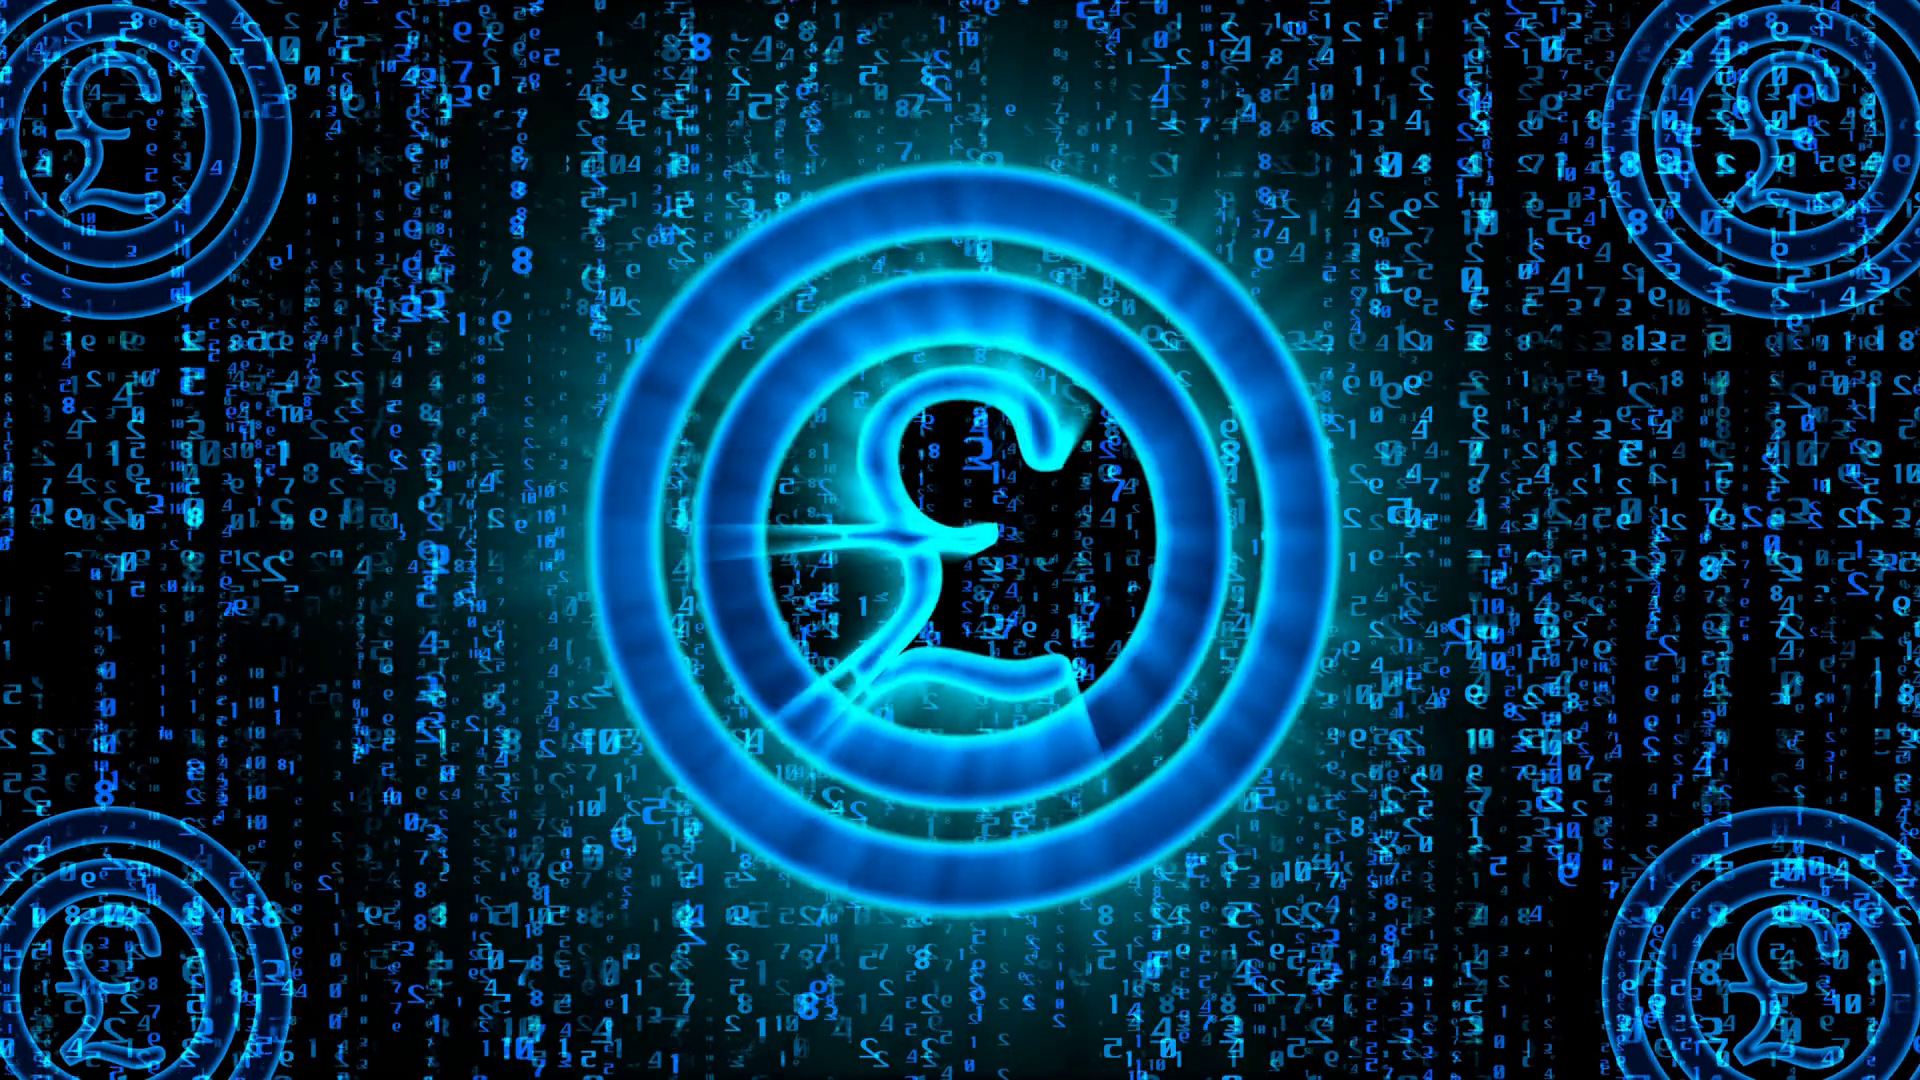 Sci Fi 3d Rendering Of A Pound Sign Of A Blue Color Thumping And Turning Right And Left With Falling Matrix Style Numbers In The Black Background Four Other Pound Signs Are Seen